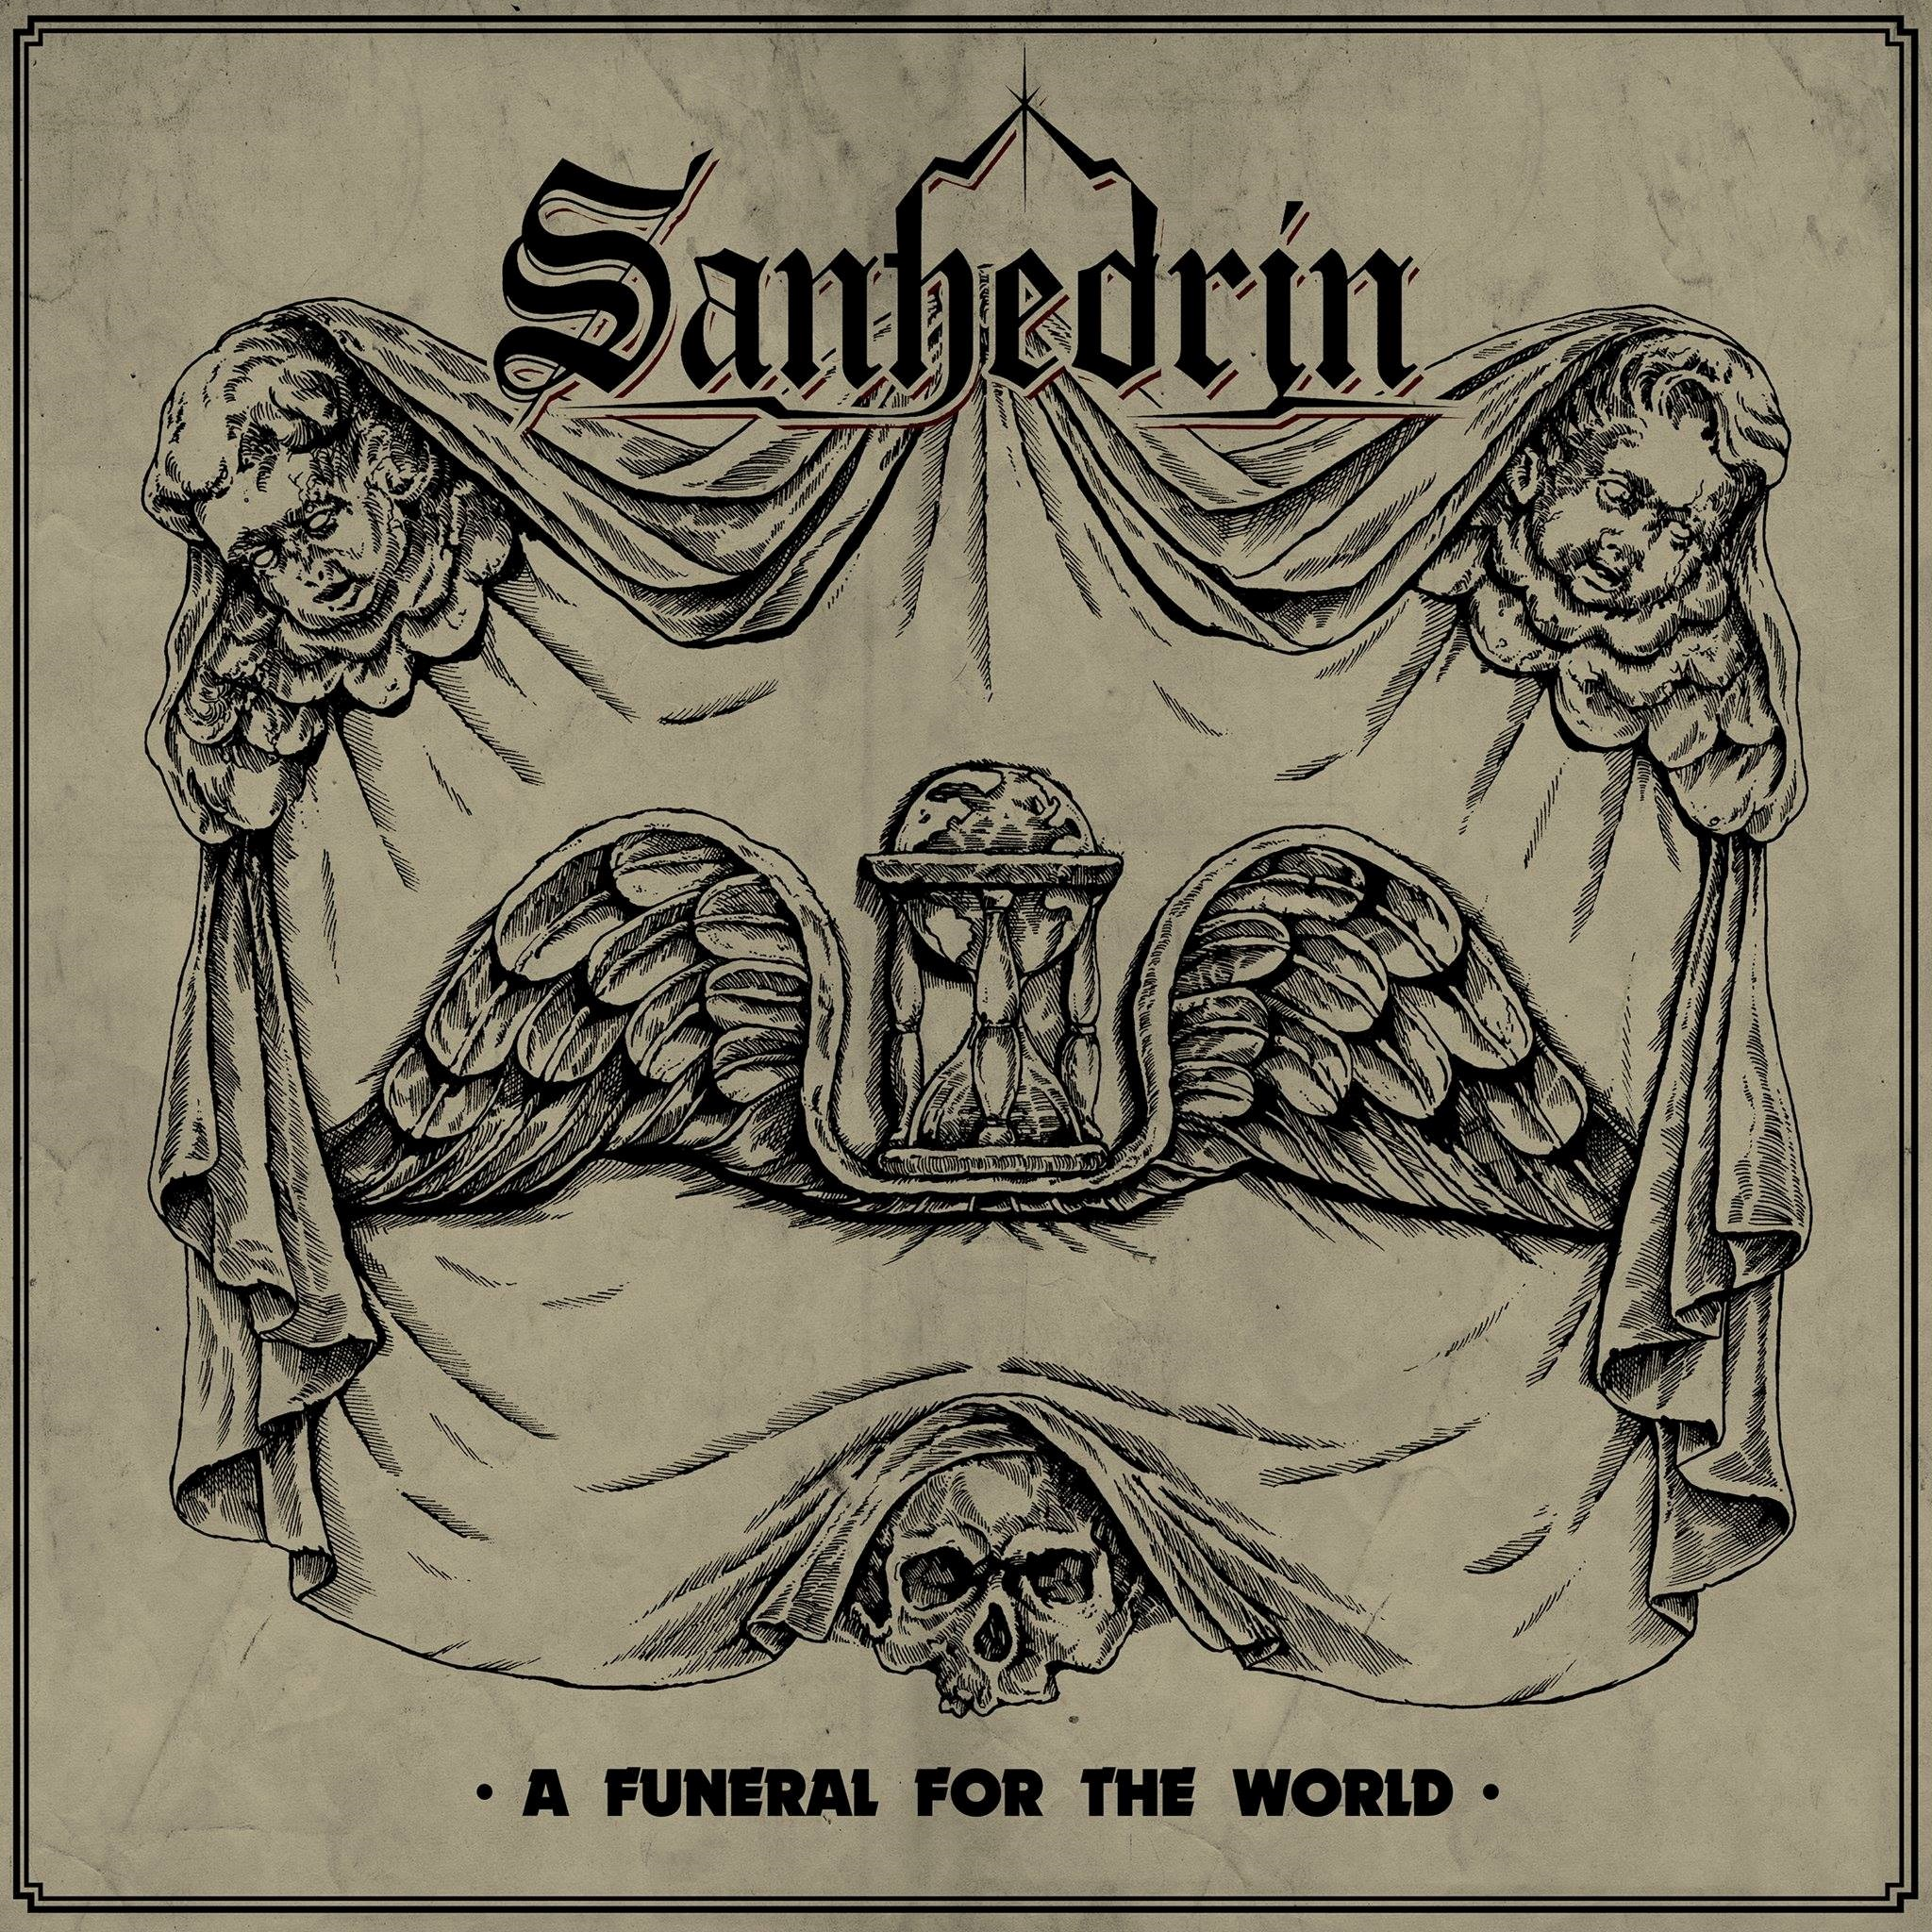 Sanhedrin: A Funeral for the World